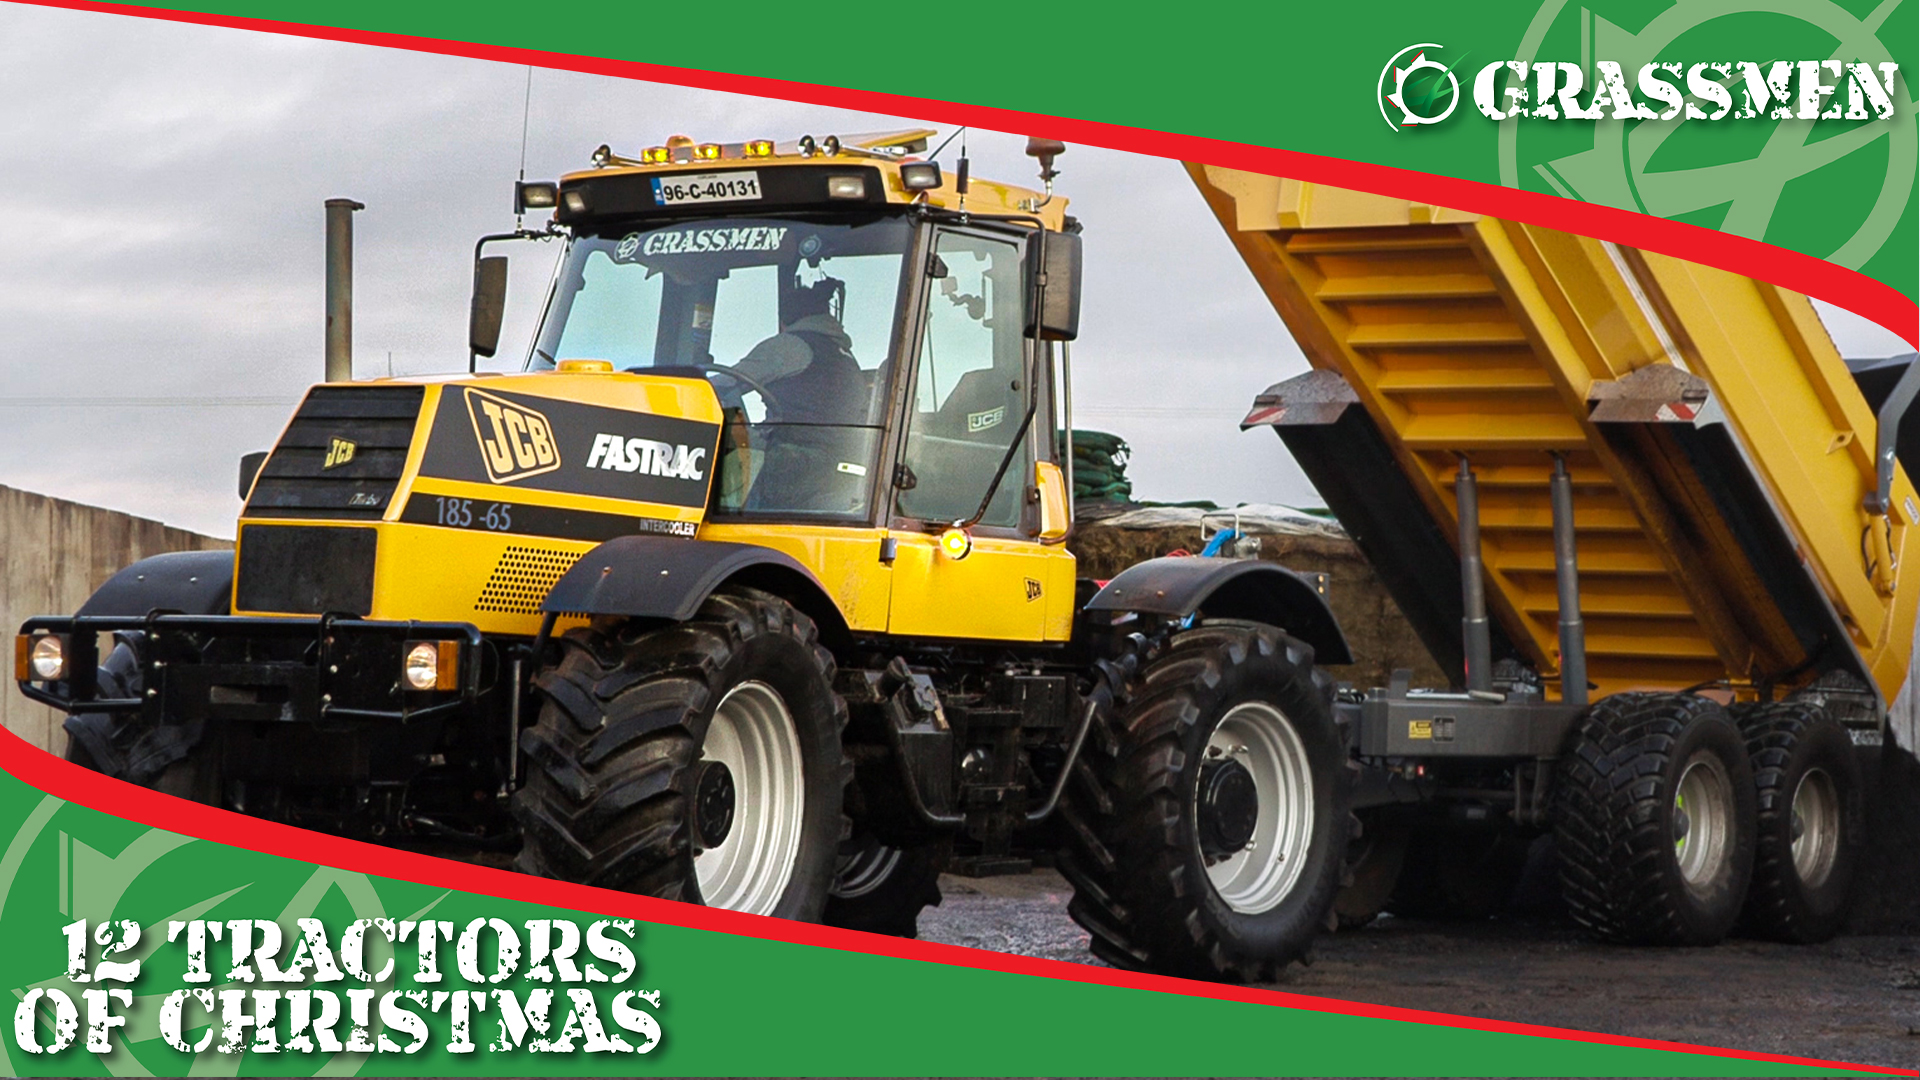 FASTRAC 185-65 - 12 Tractors of Christmas